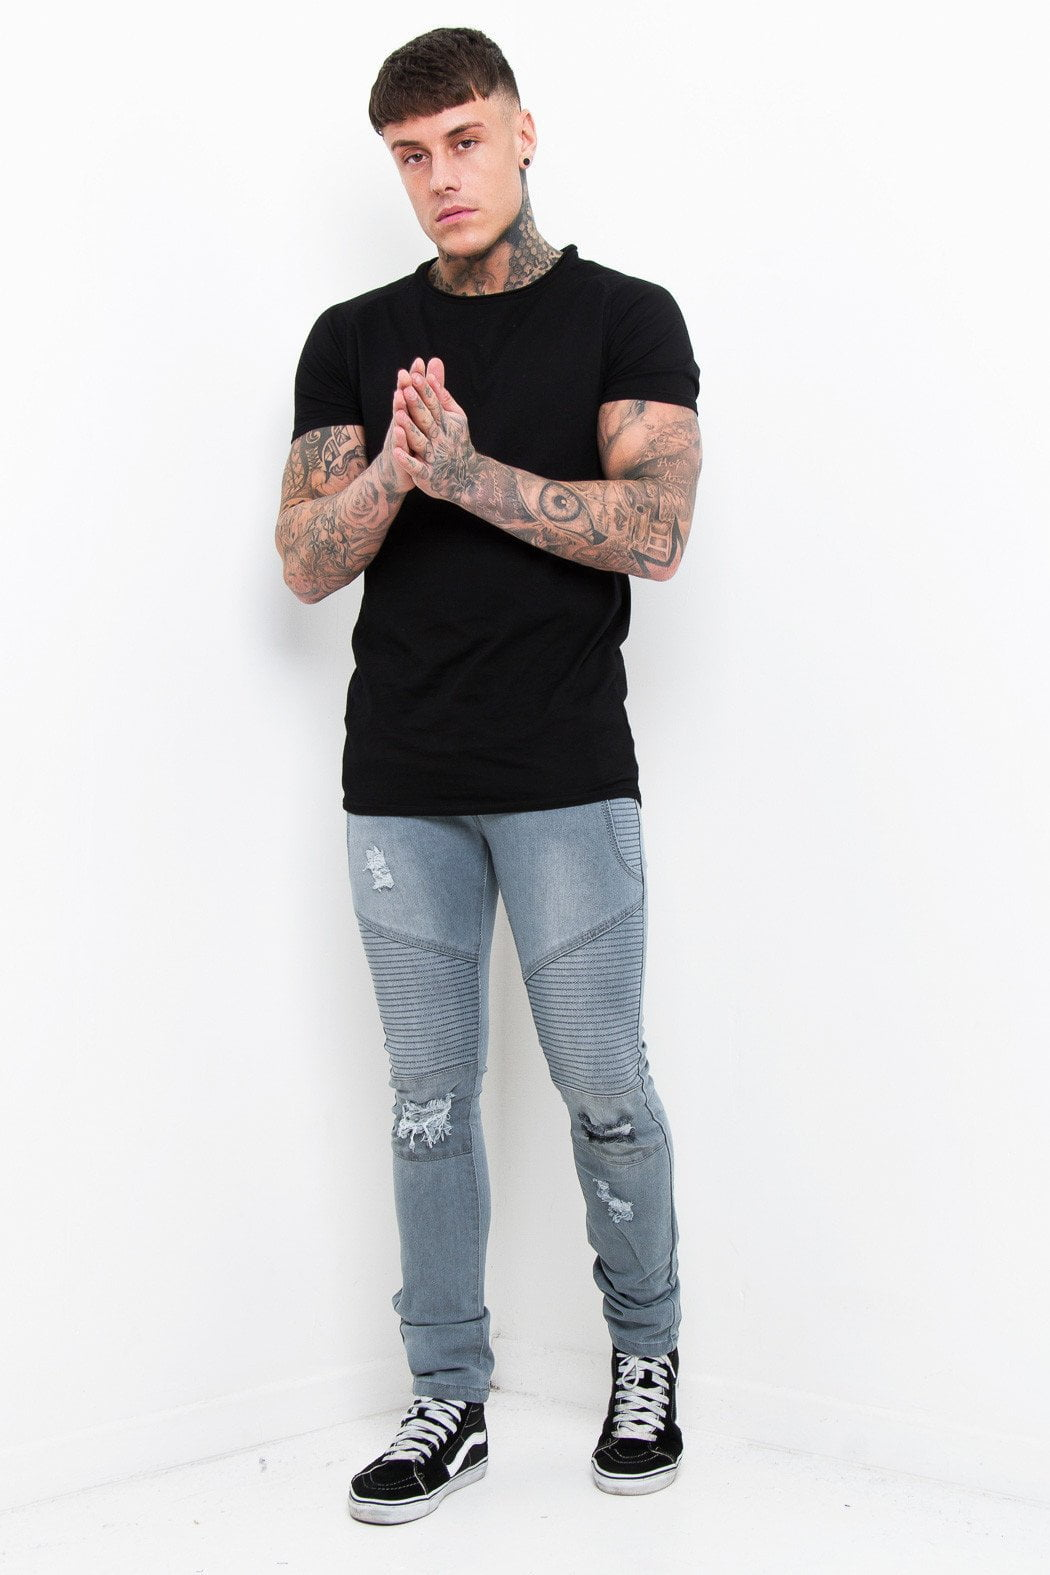 Harley Skinny Distressed And Ripped Biker Jeans In Light Grey - Liquor N Poker  Liquor N Poker